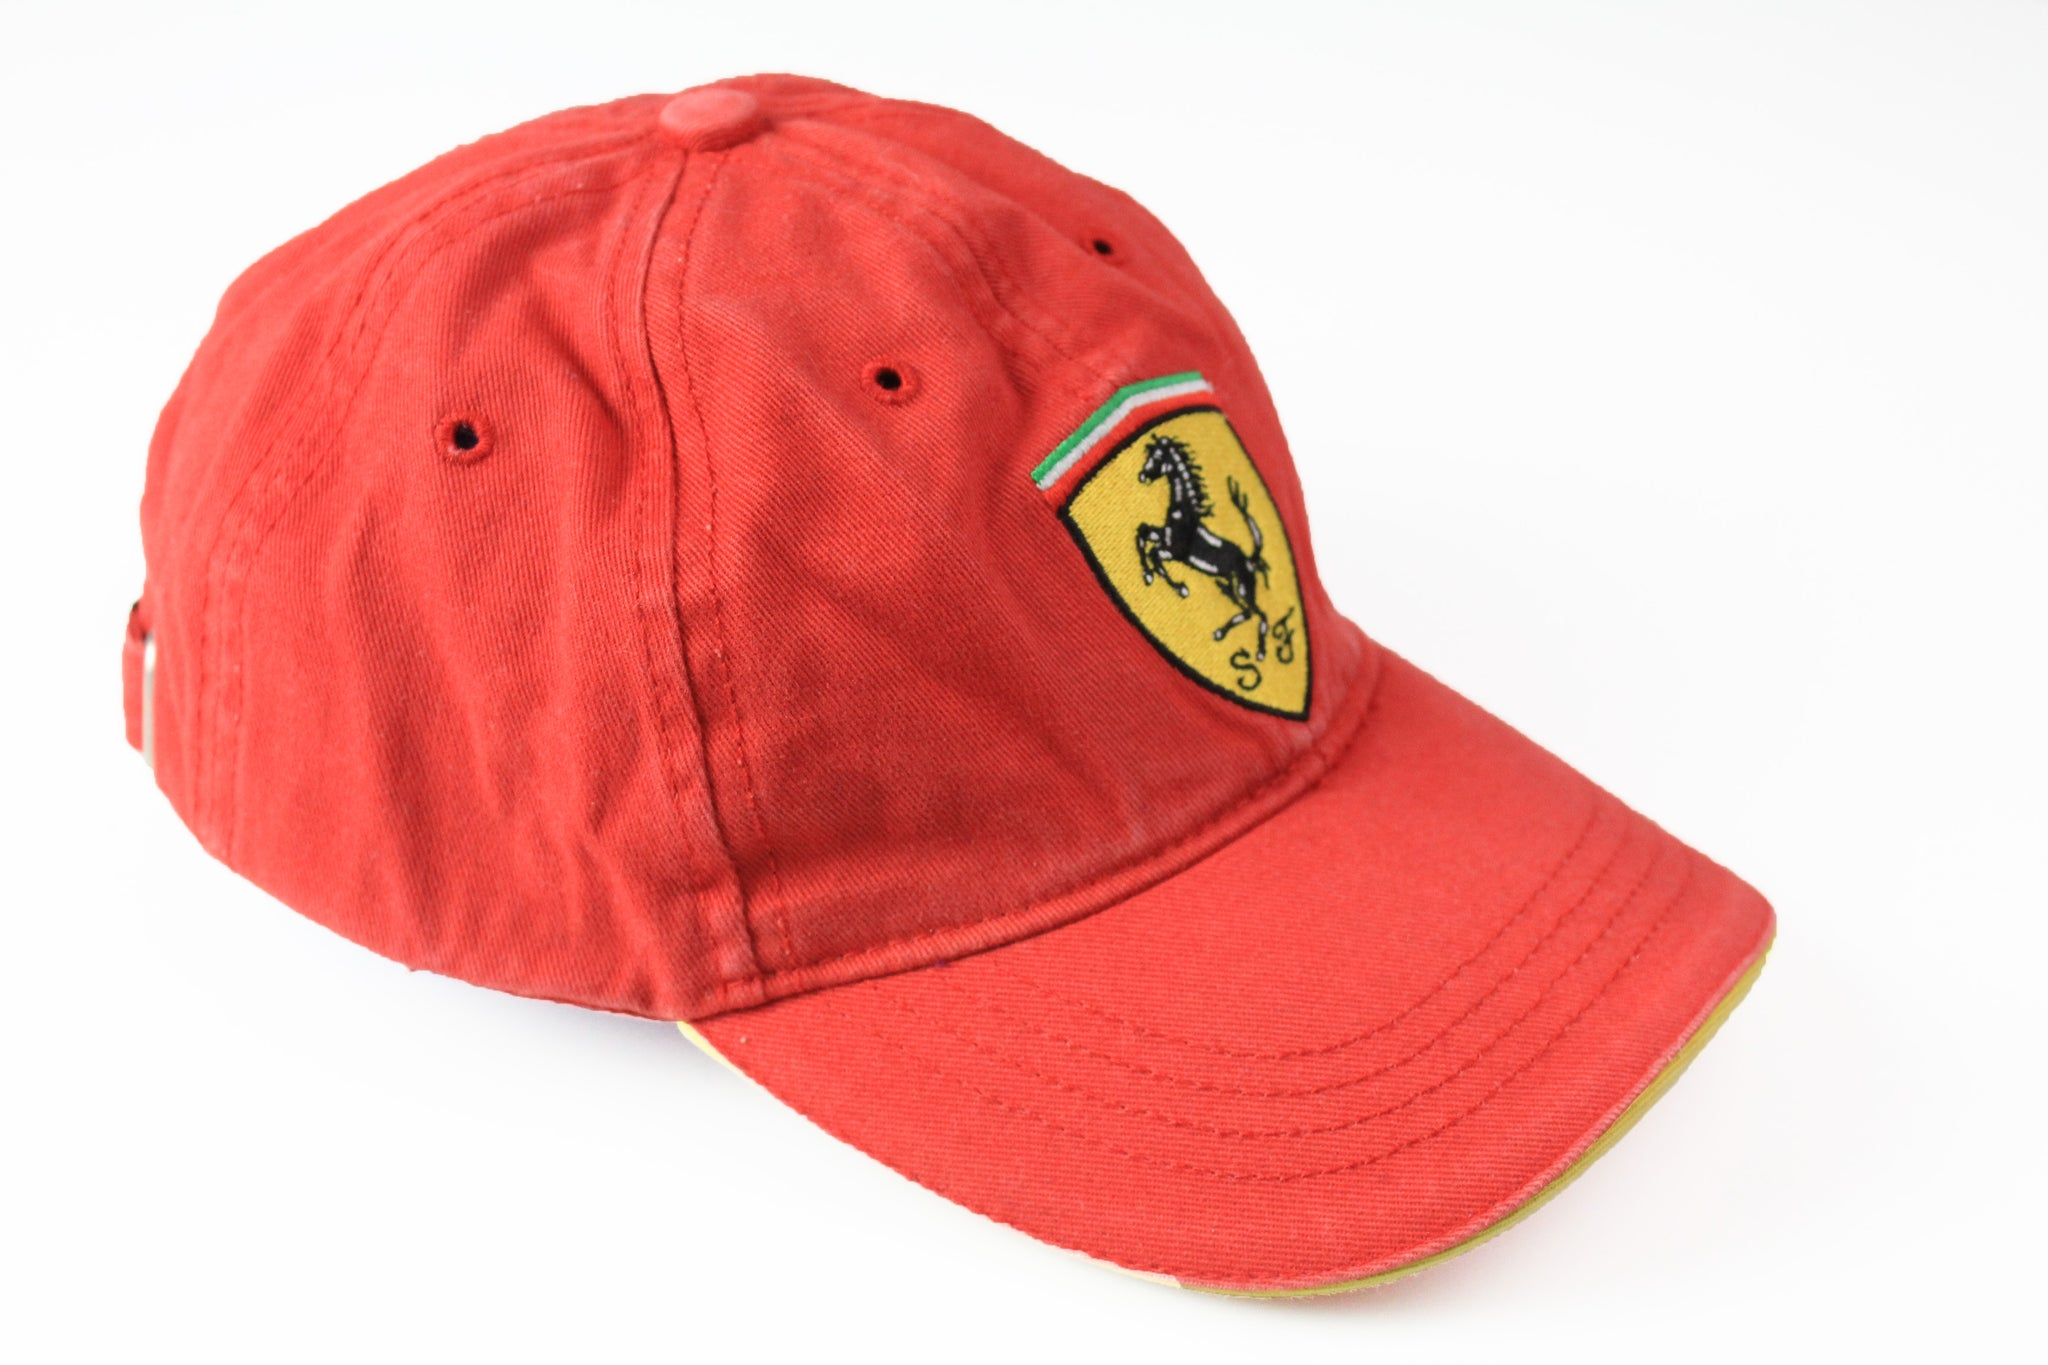 Vintage Ferrari Cap red big logo 90s michael schumacher hat